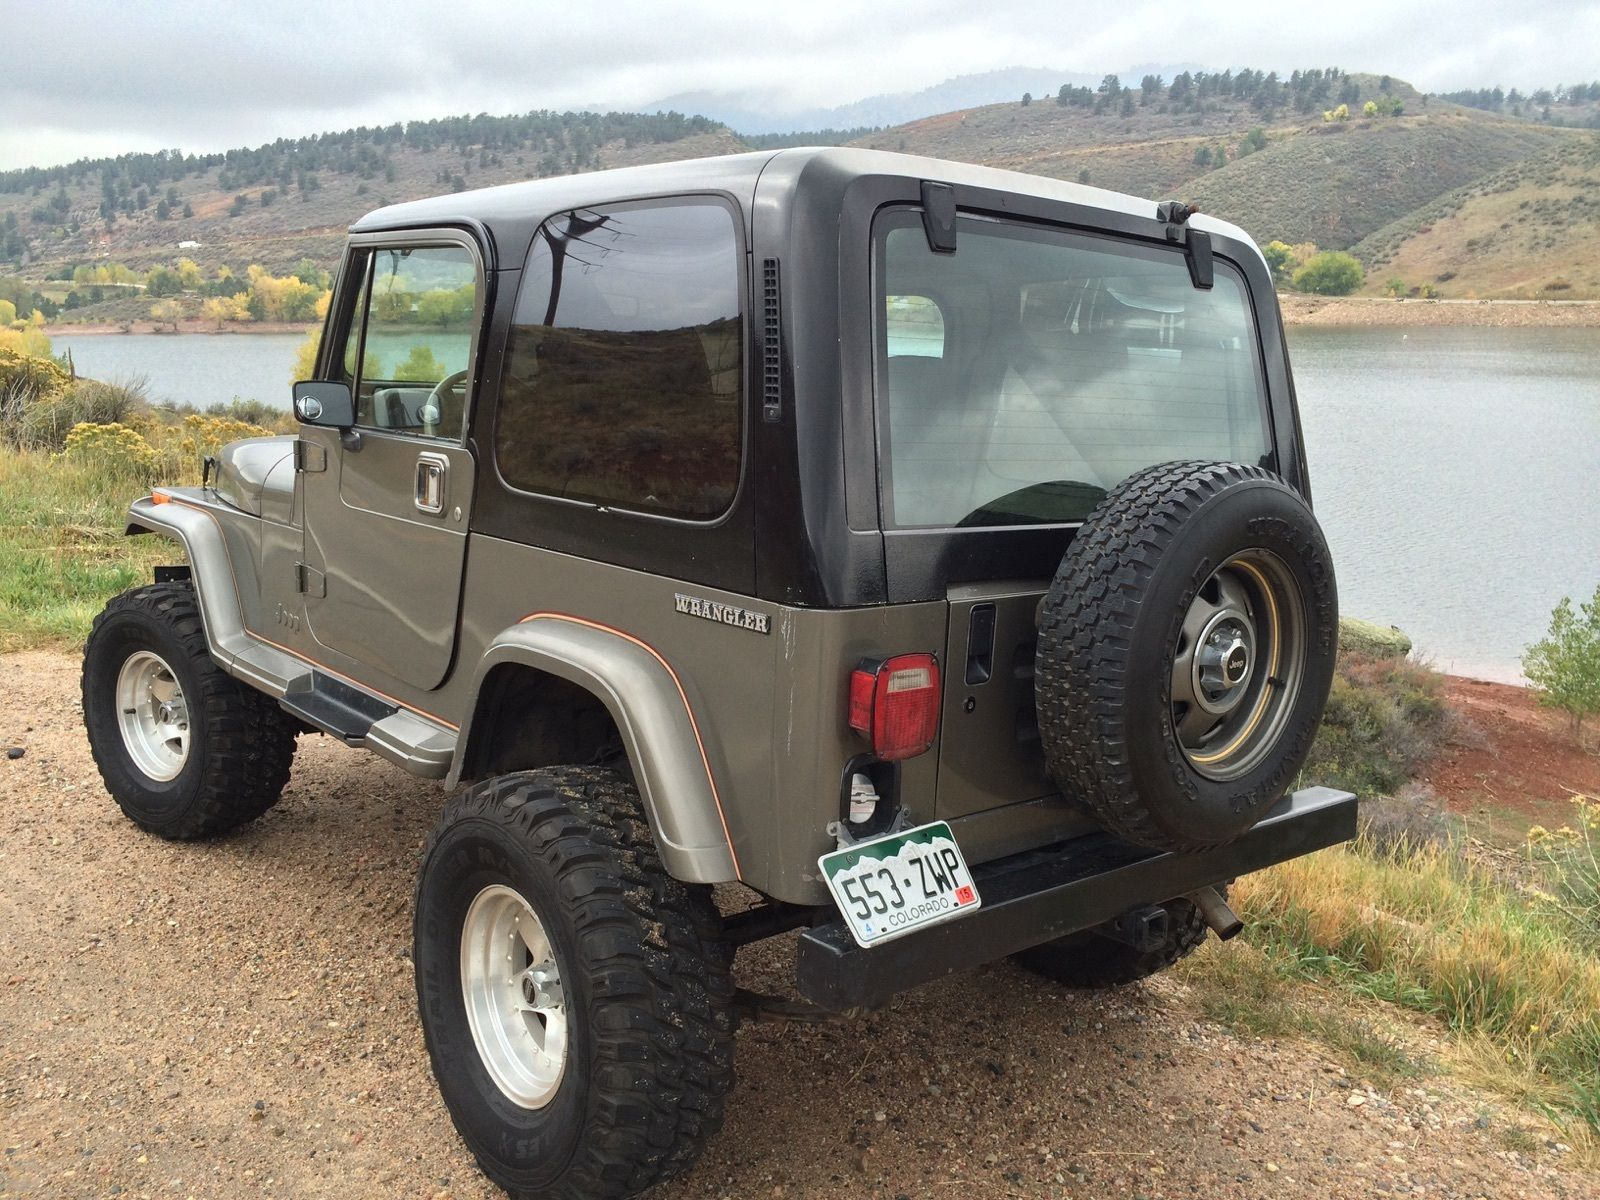 1990 jeep wrangler sahara sport utility 2 door 4 2l classic jeep wrangler 1990 for sale. Black Bedroom Furniture Sets. Home Design Ideas